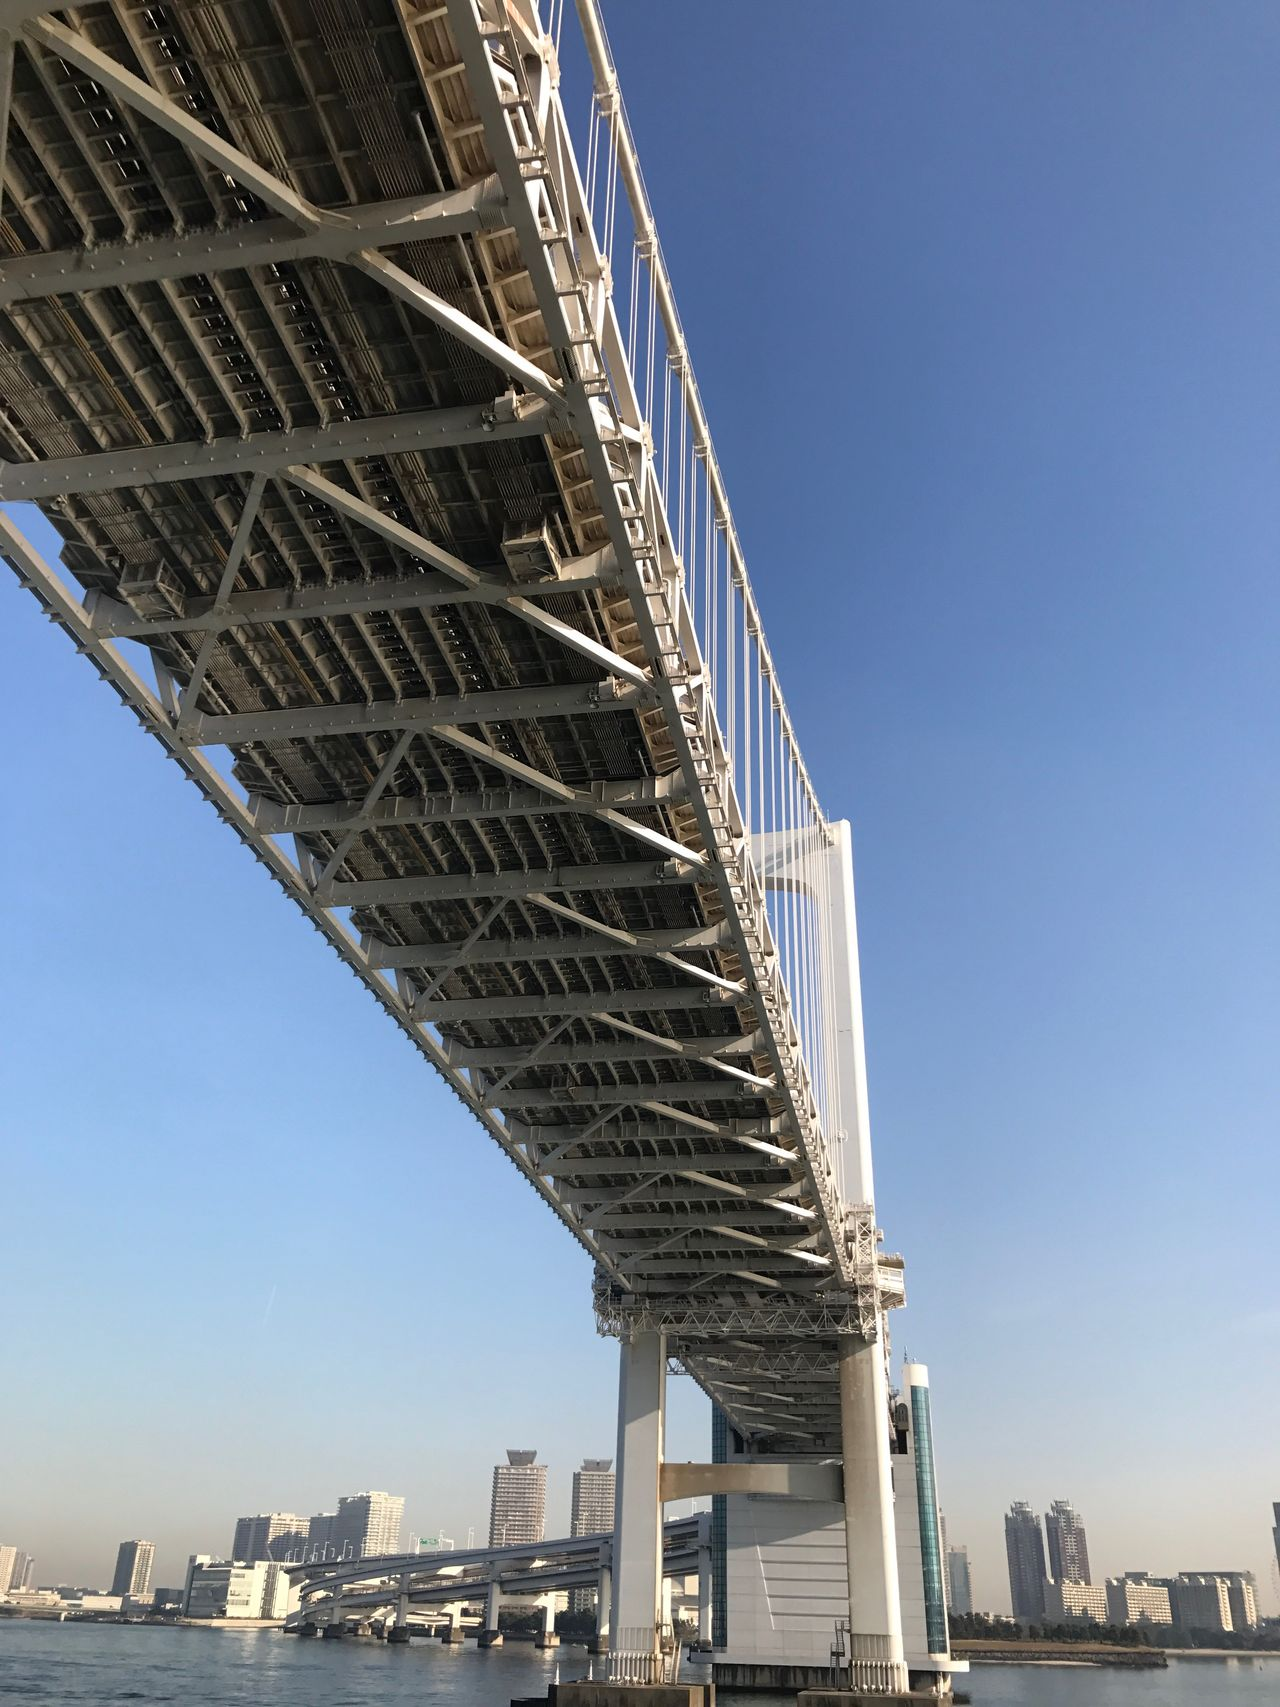 Architecture City Built Structure Clear Sky Bridge - Man Made Structure Low Angle View Building Exterior Outdoors Sky Blue Transportation Engineering Travel Destinations Connection Skyscraper Day No People Suspension Bridge Cityscape Tokyo Underthebridge Finding New Frontiers Tokyo Bay Tokyo Rainbow Bridge Rainbow Bridge